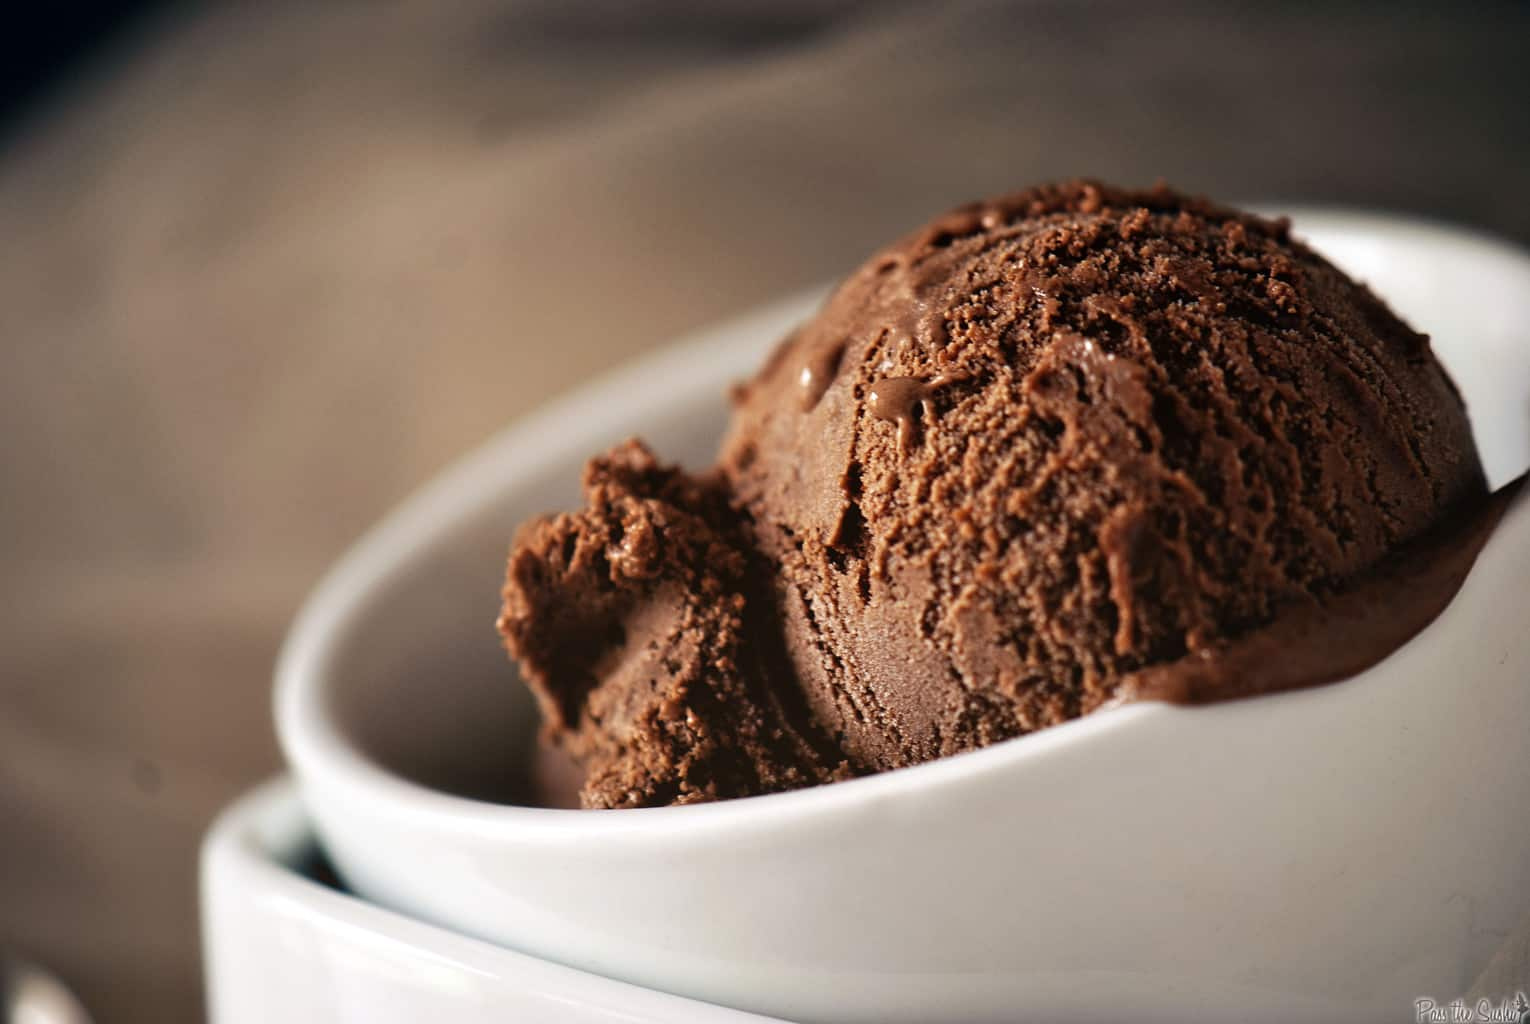 Chocolate Ice Cream Photography Tнe veɴdιɴɢ mαcнιɴe gαмe